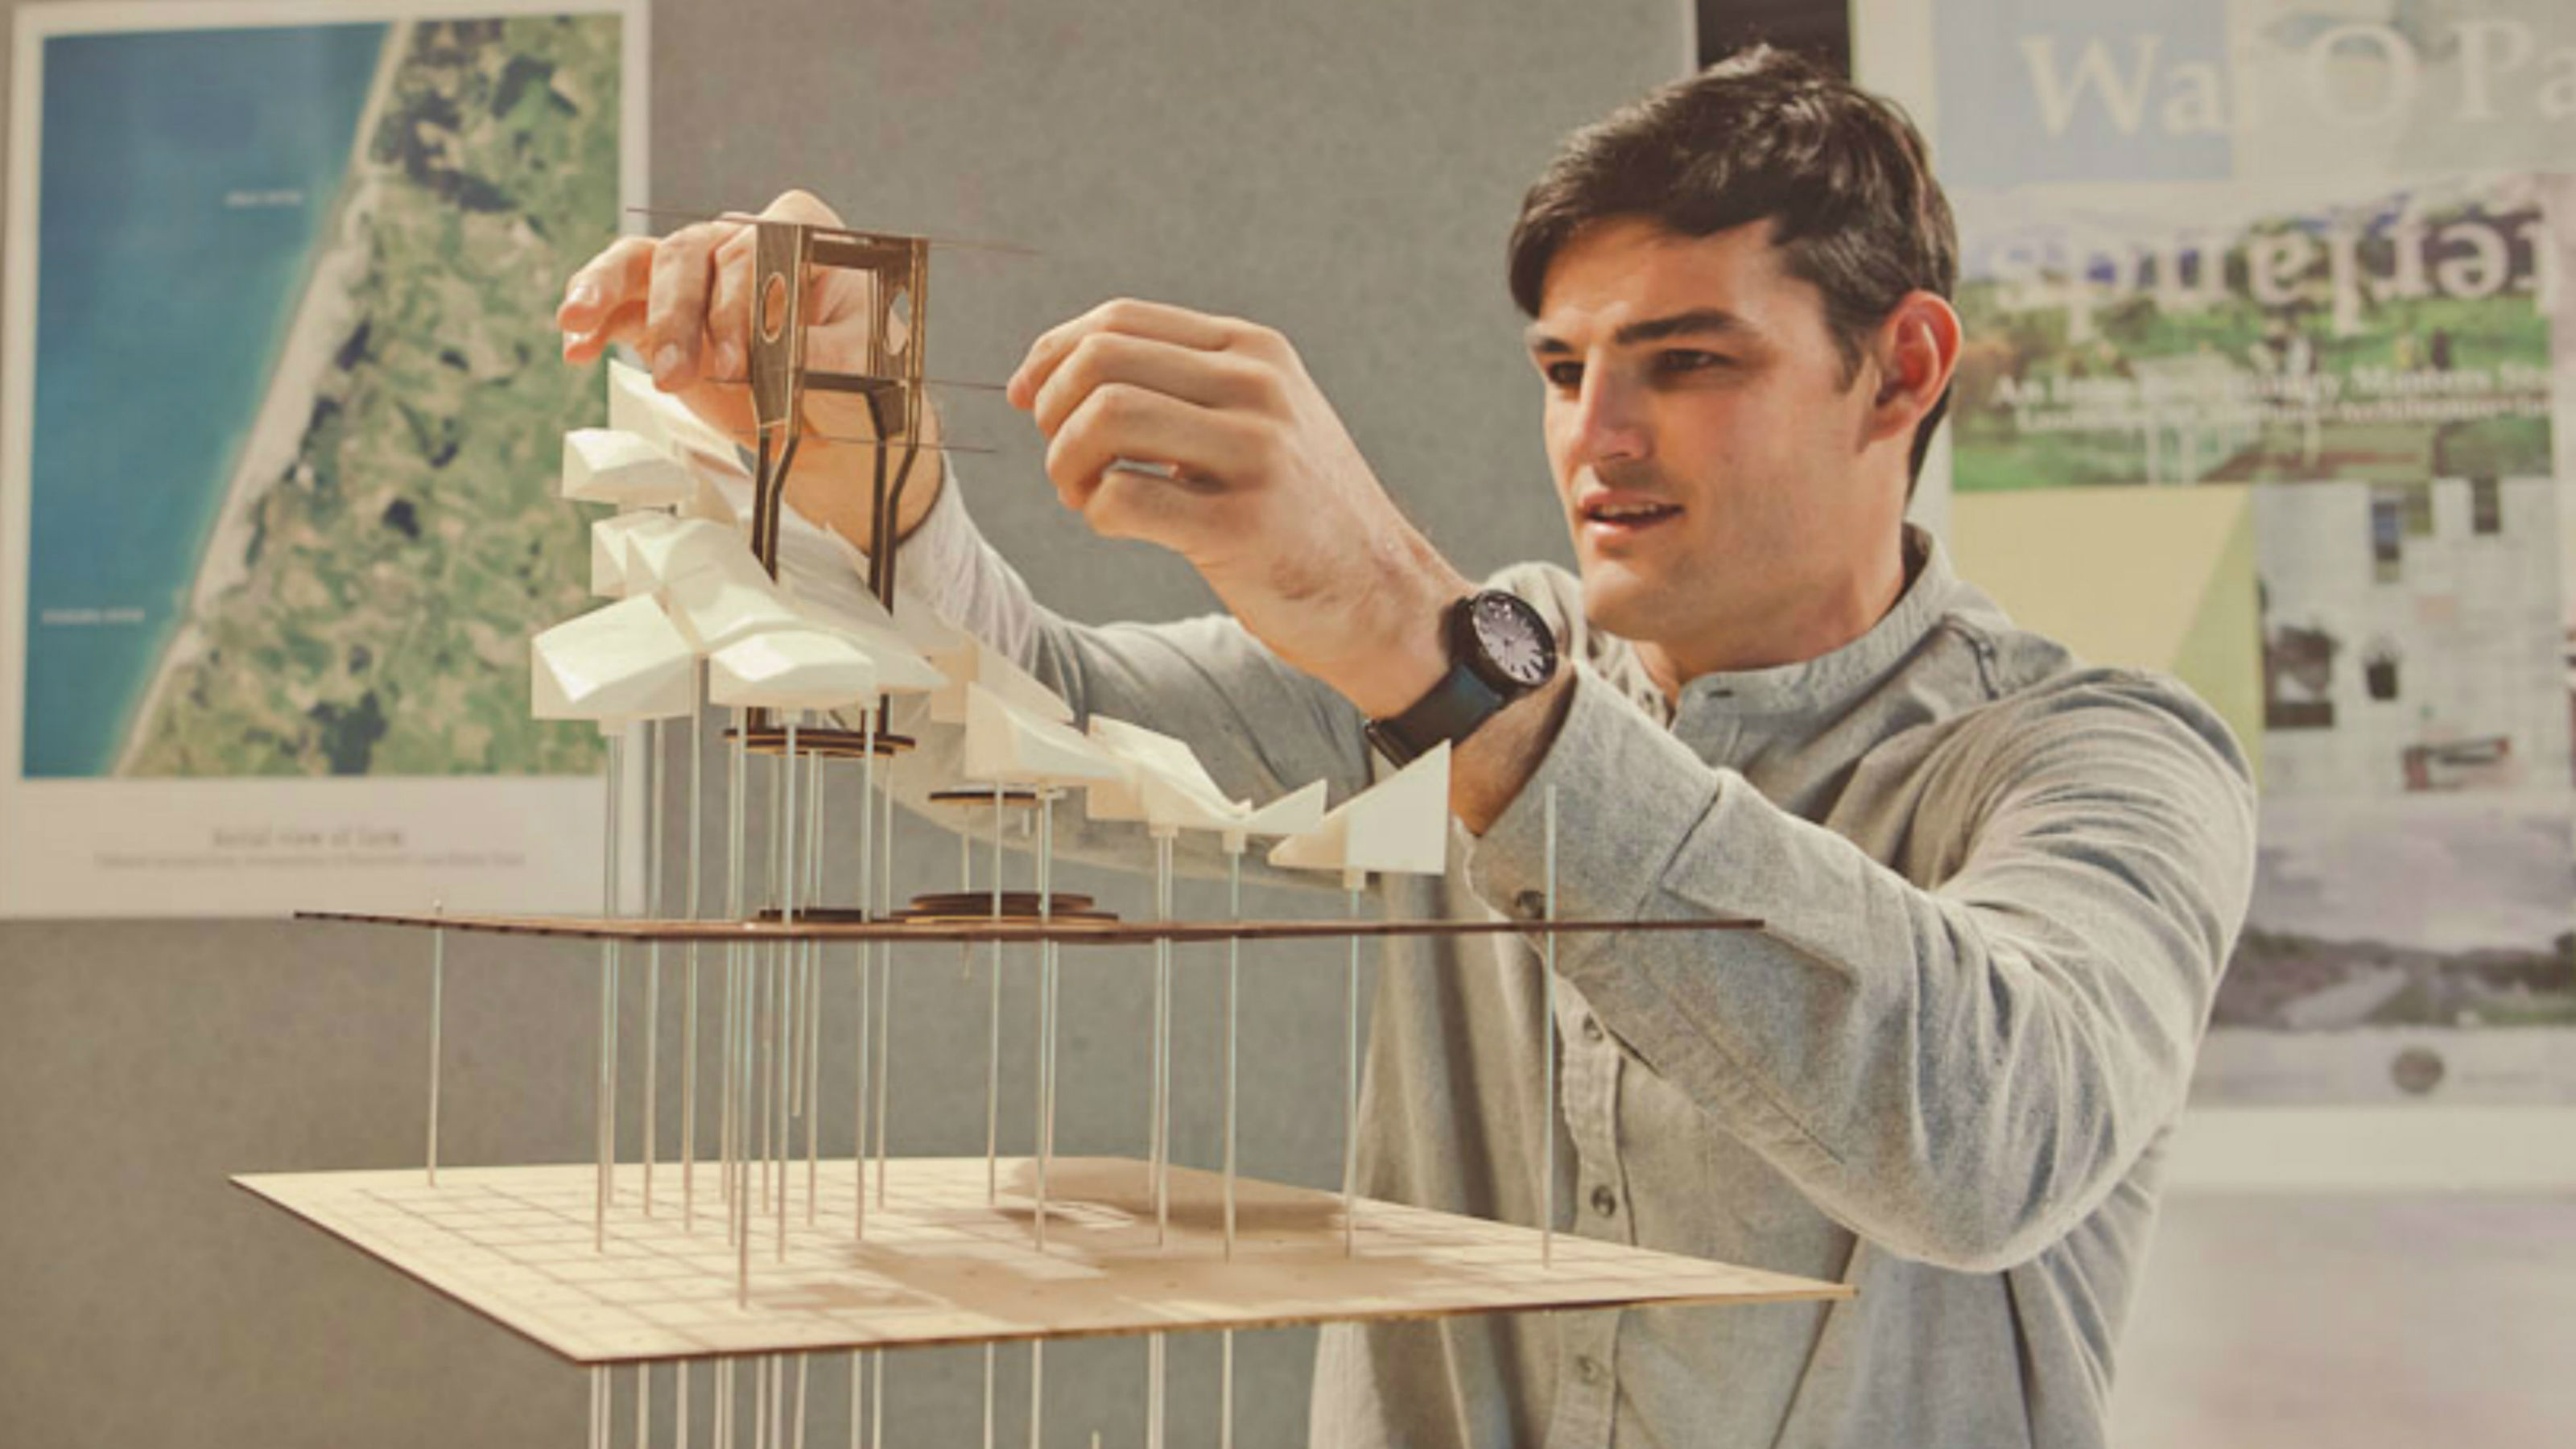 Student Devon Booth assembling a model for his fourth year architecture studies.